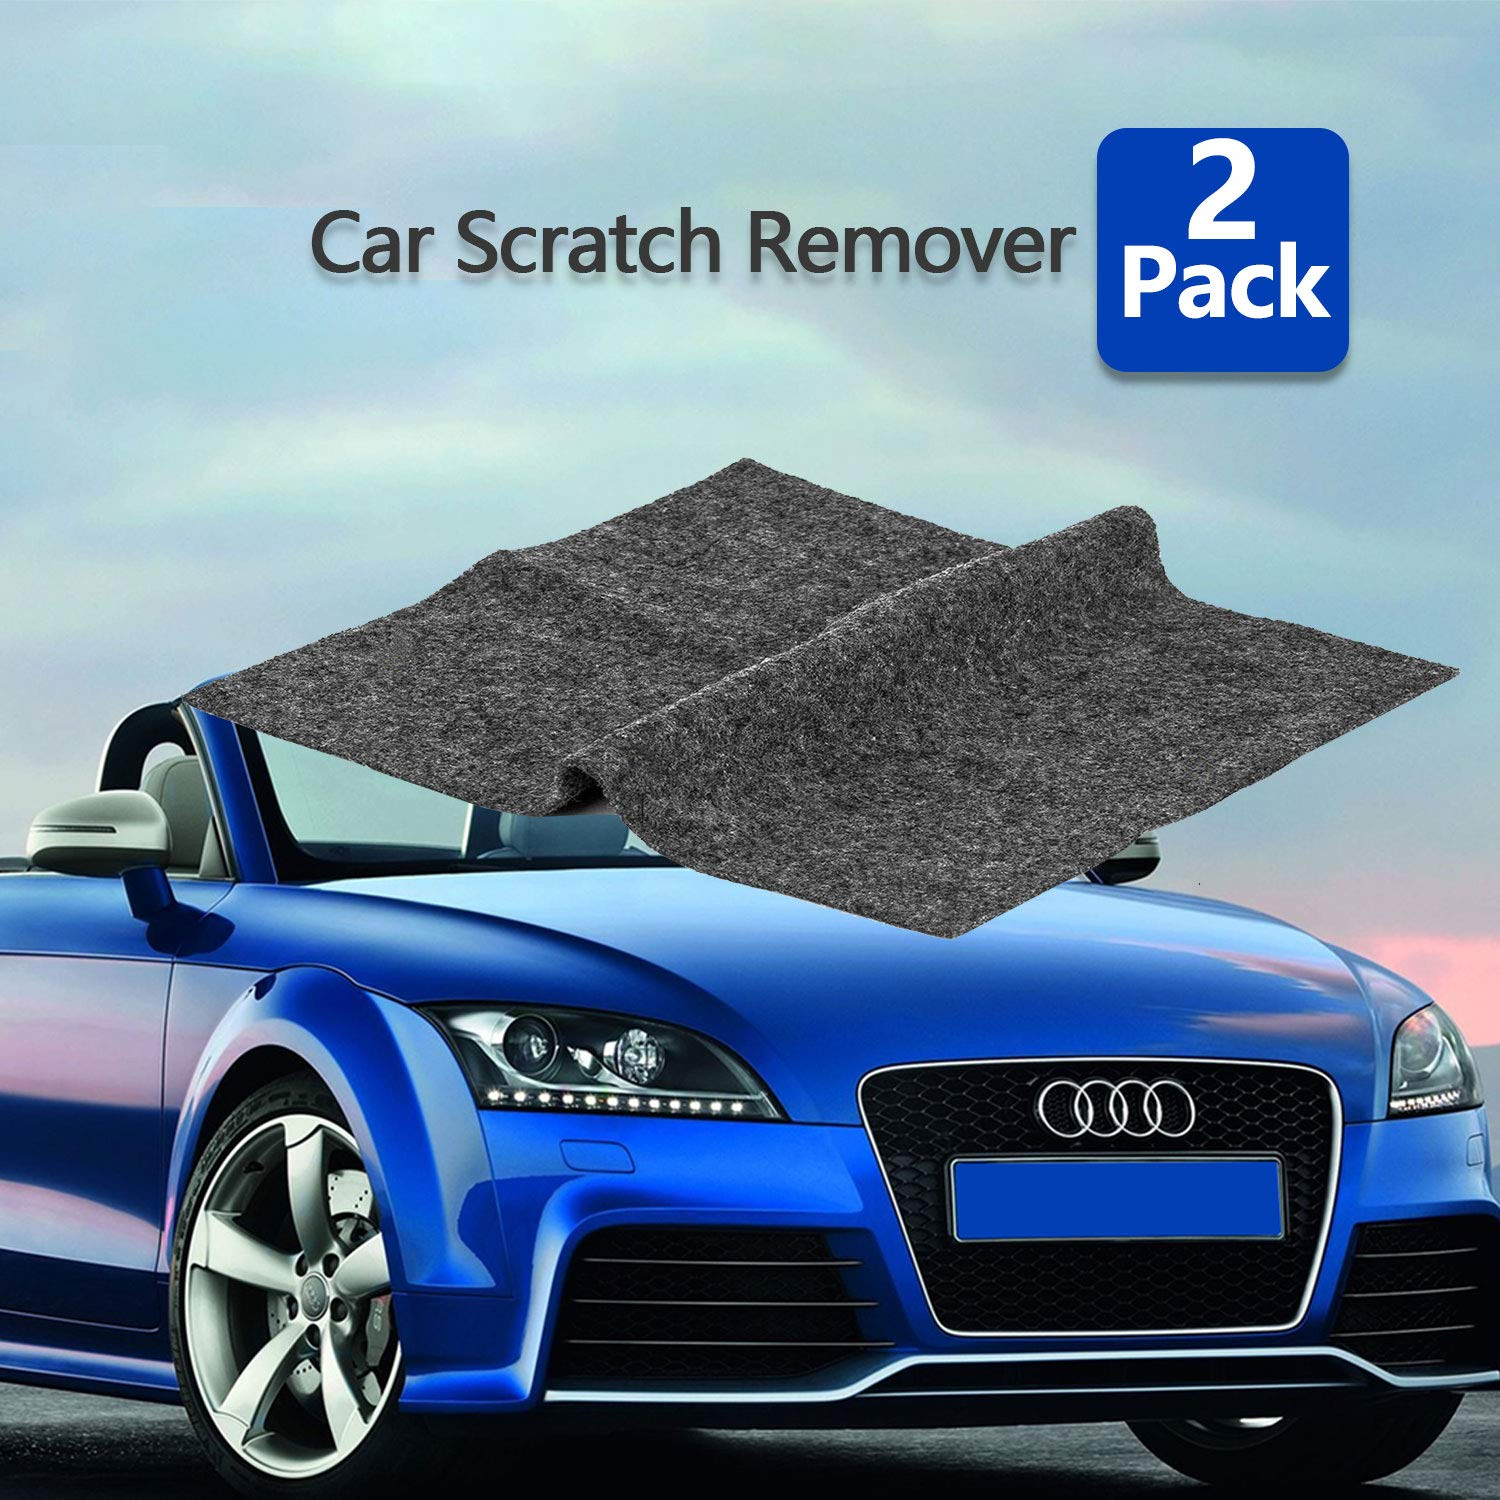 [2pack] Multipurpose Scratch Removal for Cars , Car Paint Scratch Repair Cloth, Car Scuff and Scratch Remover Nano-Tech Magic Scratch Remover Fix Car Scuffs Polishing Kit for Multicolor Car Surface Sydixon